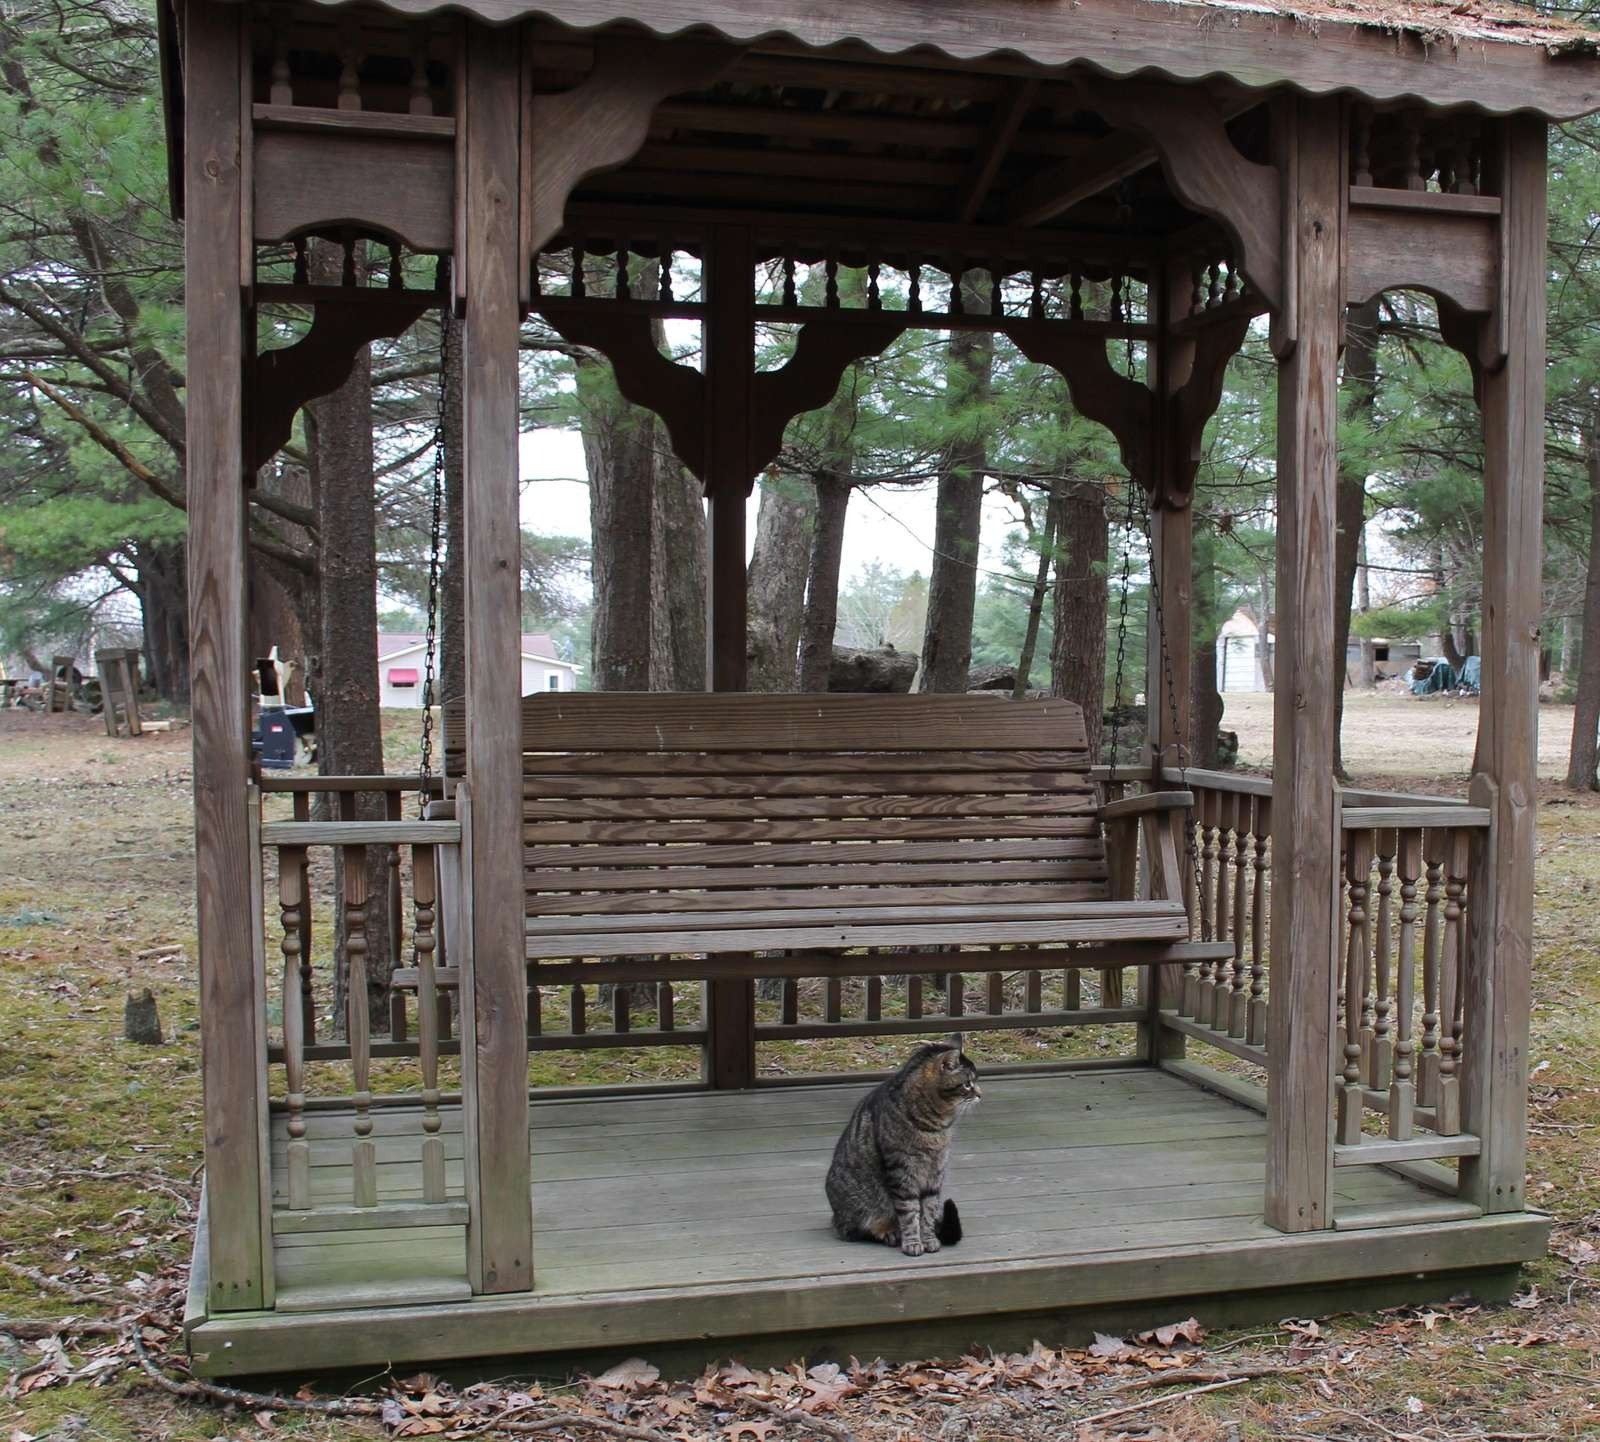 Gazebo at Blue Spruce with Kitty